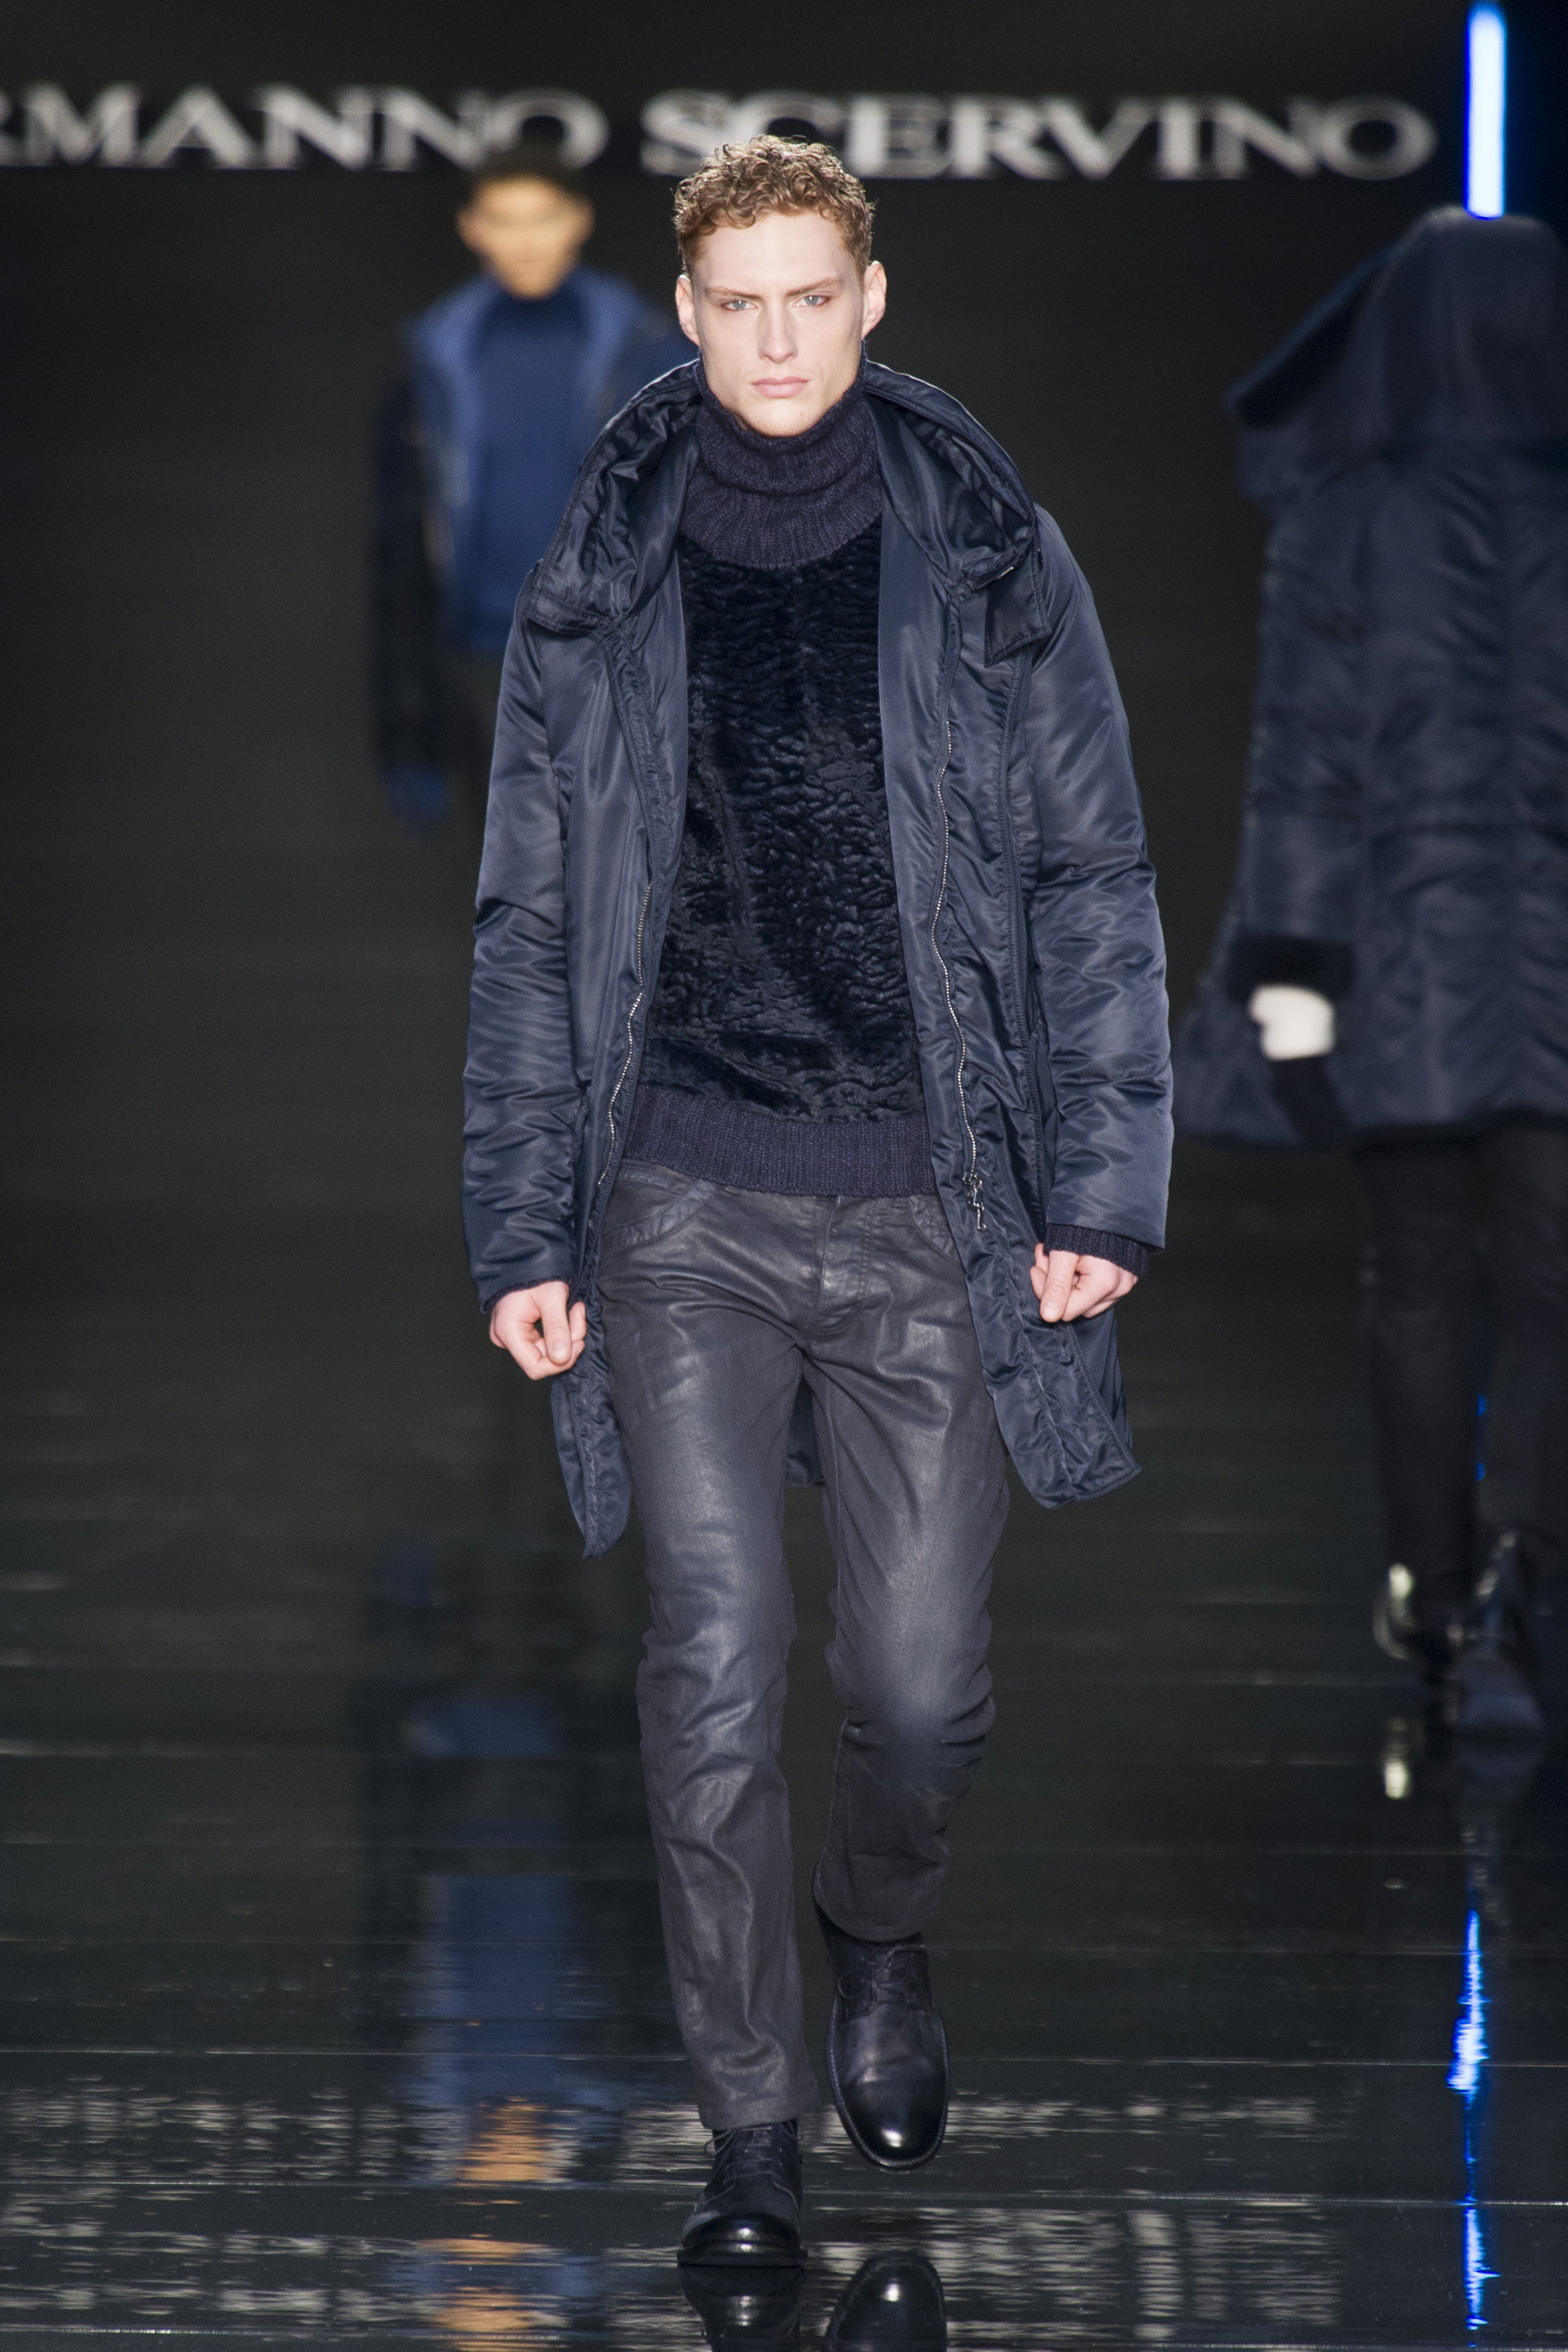 ermanno-scervino-mens-autumn-fall-winter-2014-mfw13.jpg